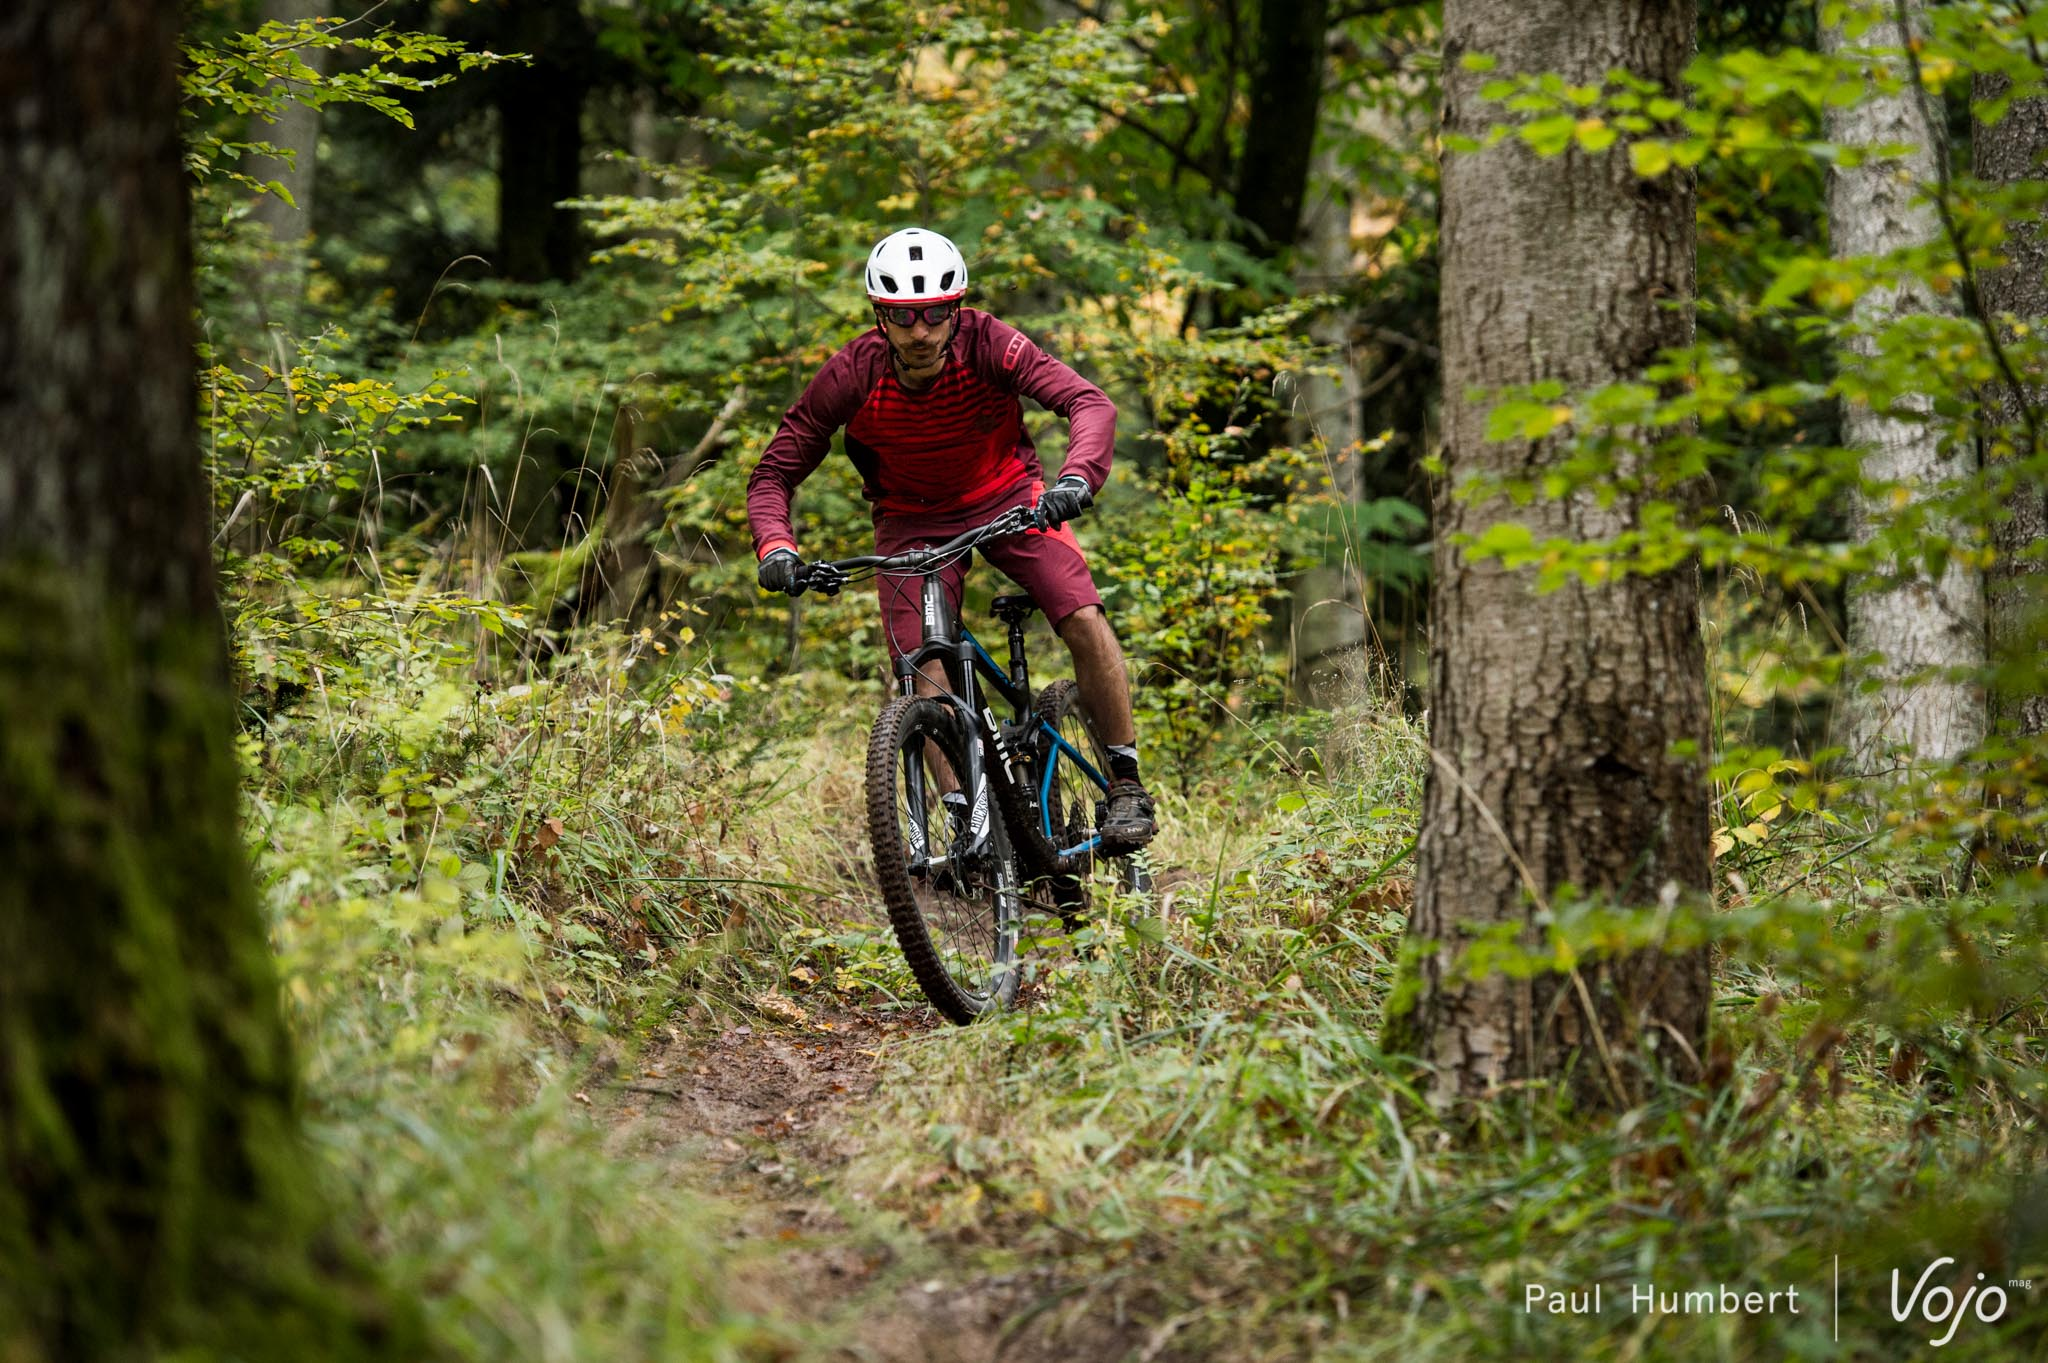 bmc-speedfox-trailcrew-02-2016-vojo-paul-humbert-19